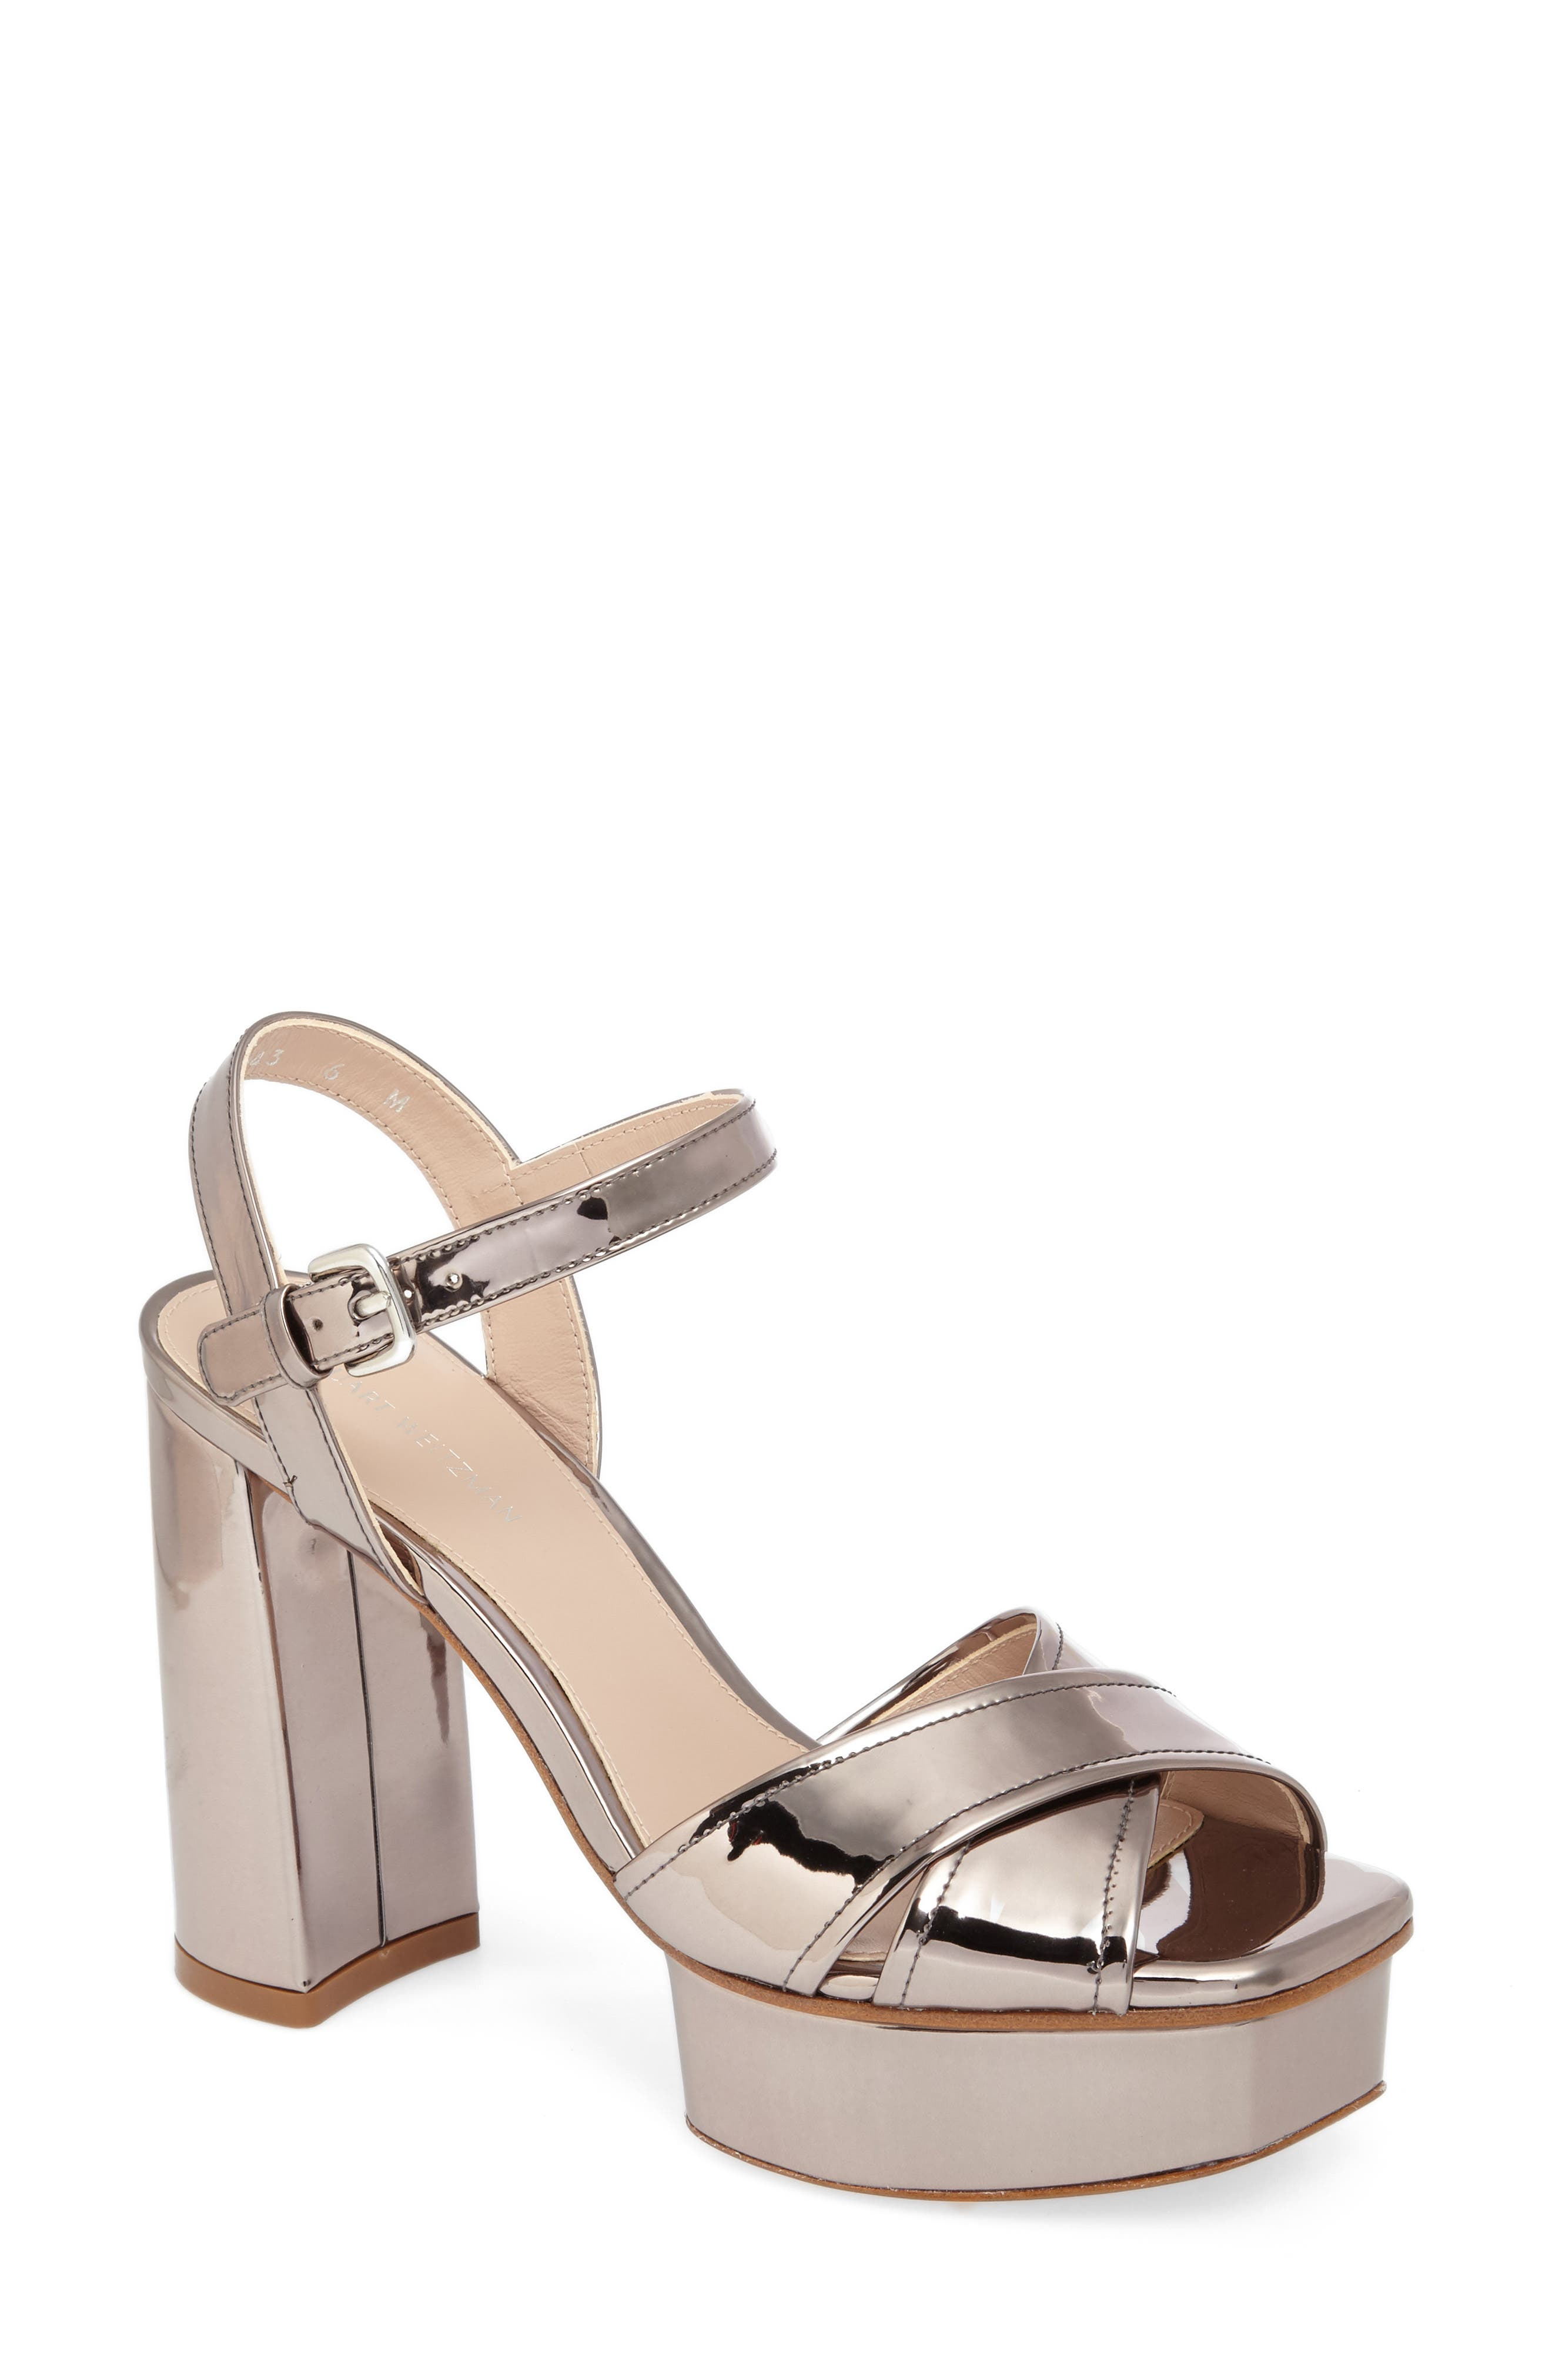 Exposed Platform Sandal,                             Main thumbnail 5, color,